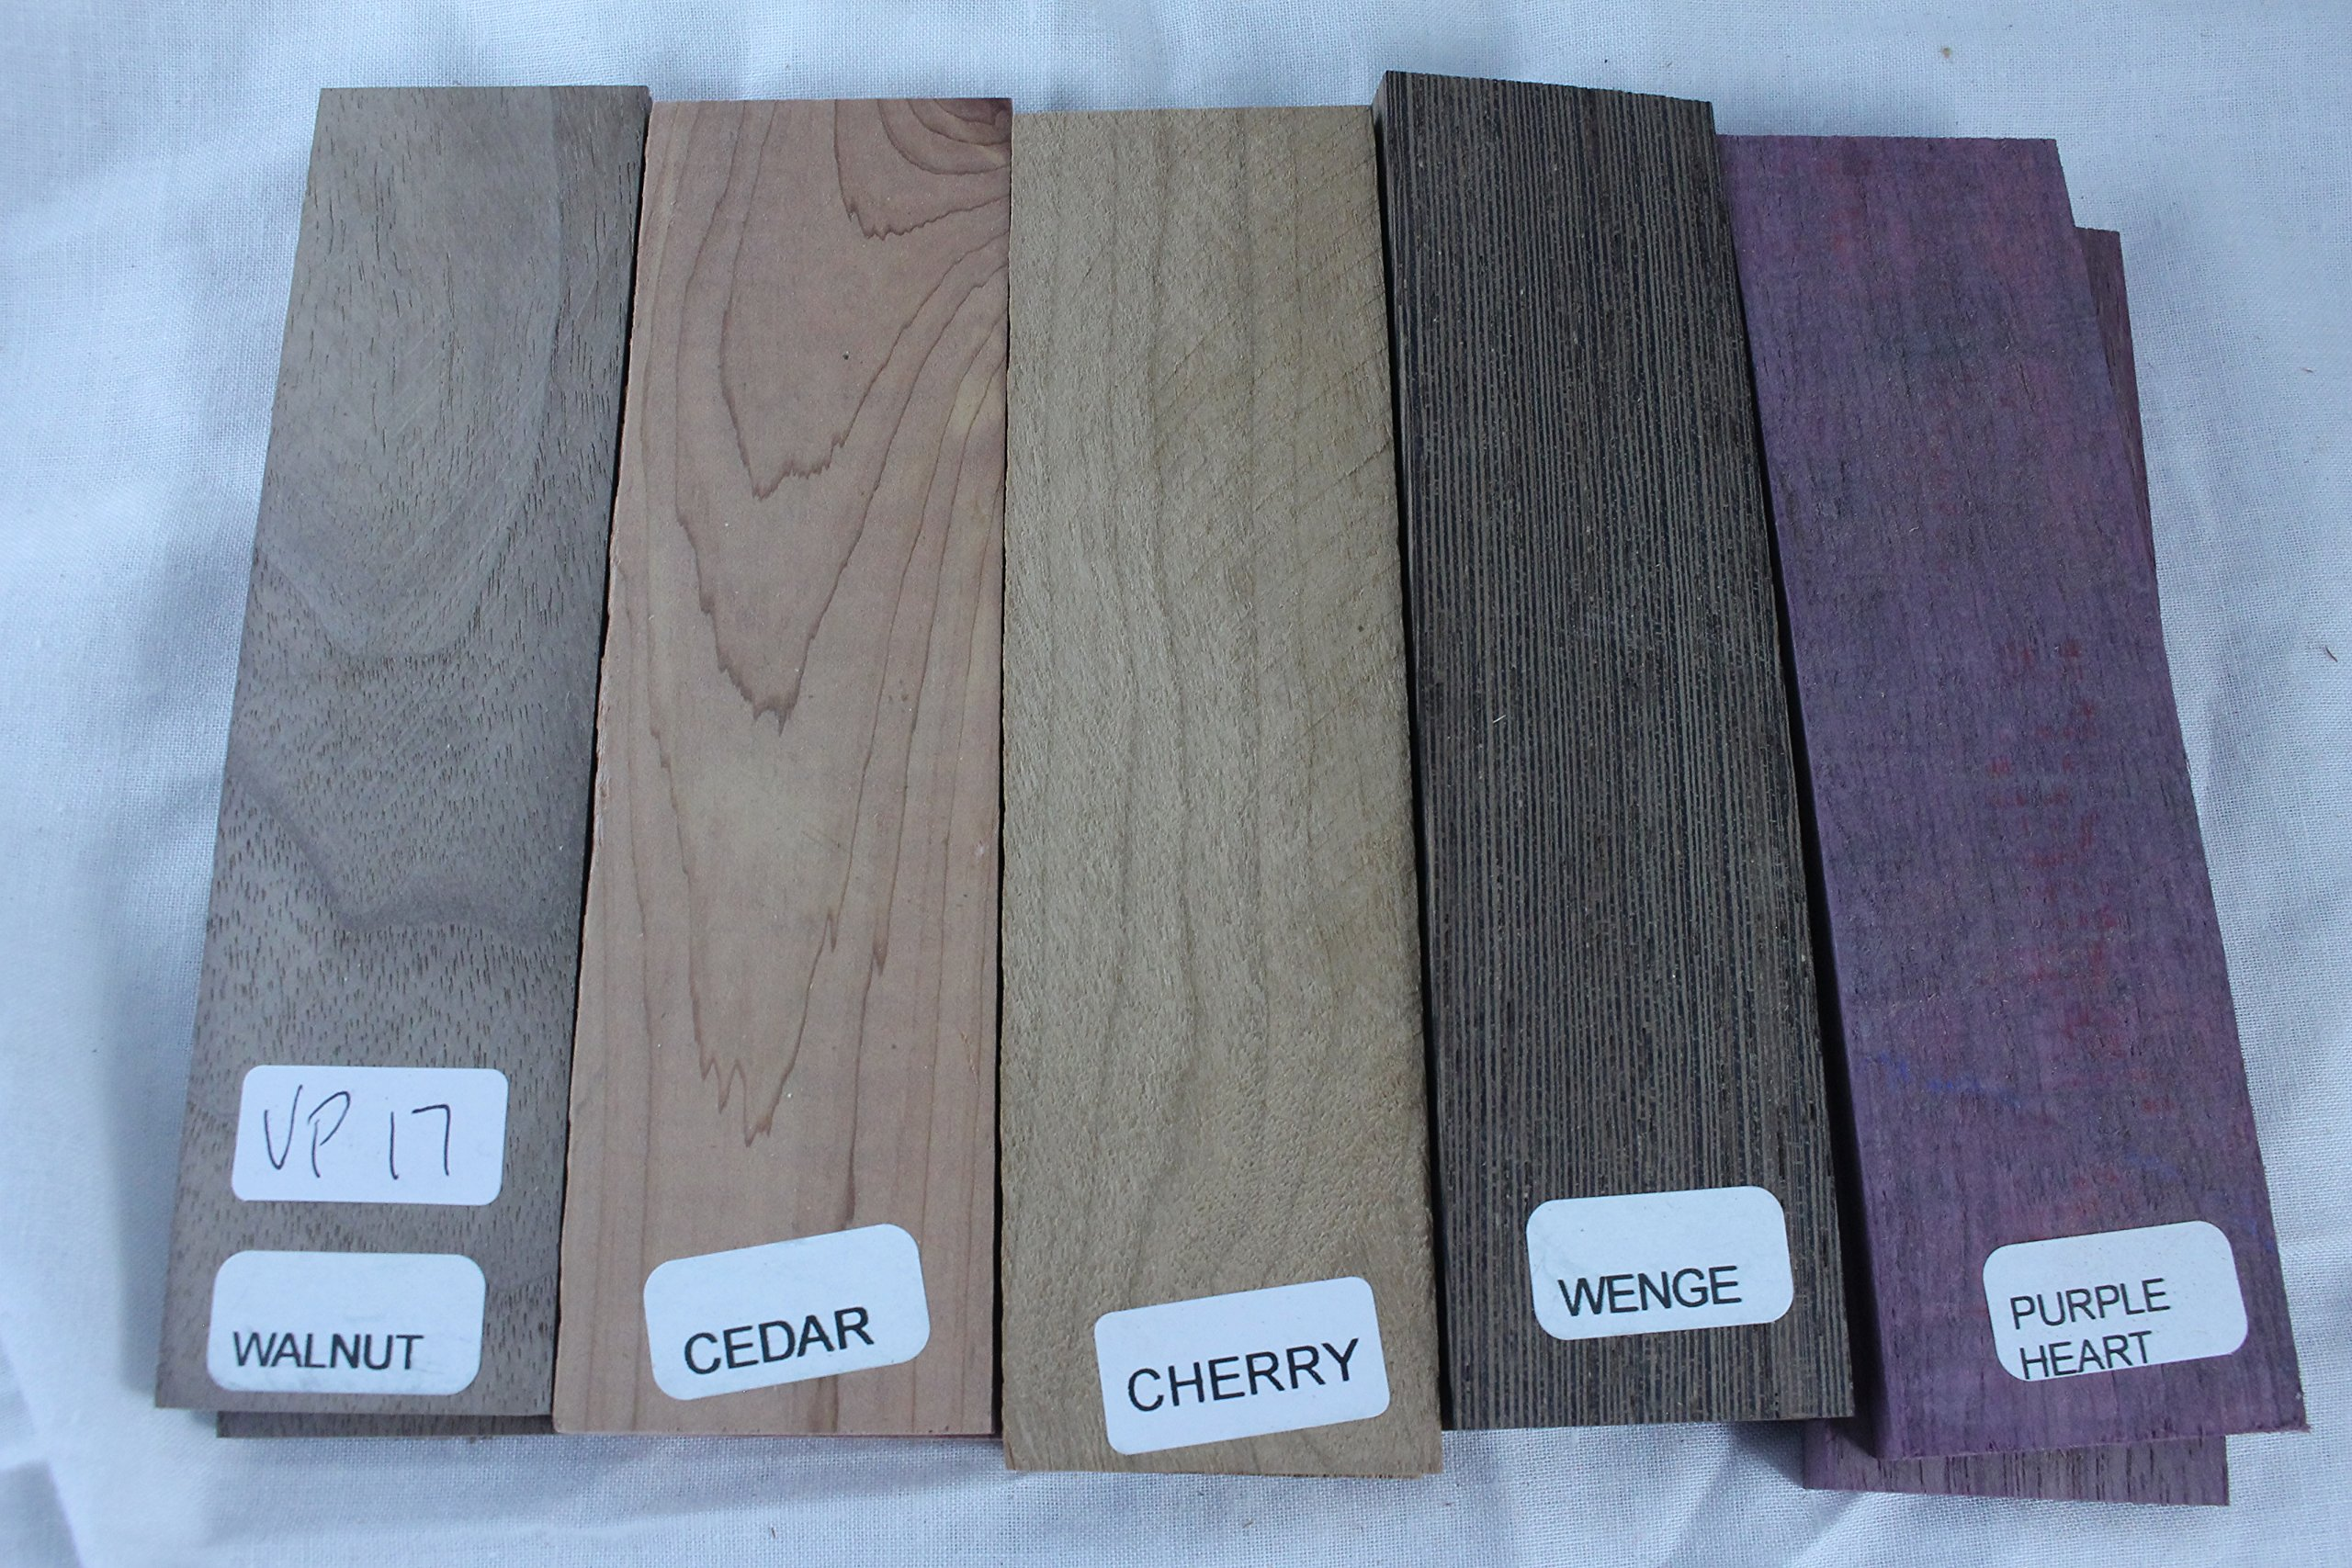 Payne Bros Custom Knives Variety Pack of 5 Wood Scales, 5 INCH, for Knife Making - Gun grps - Craft Supplies (VP17)